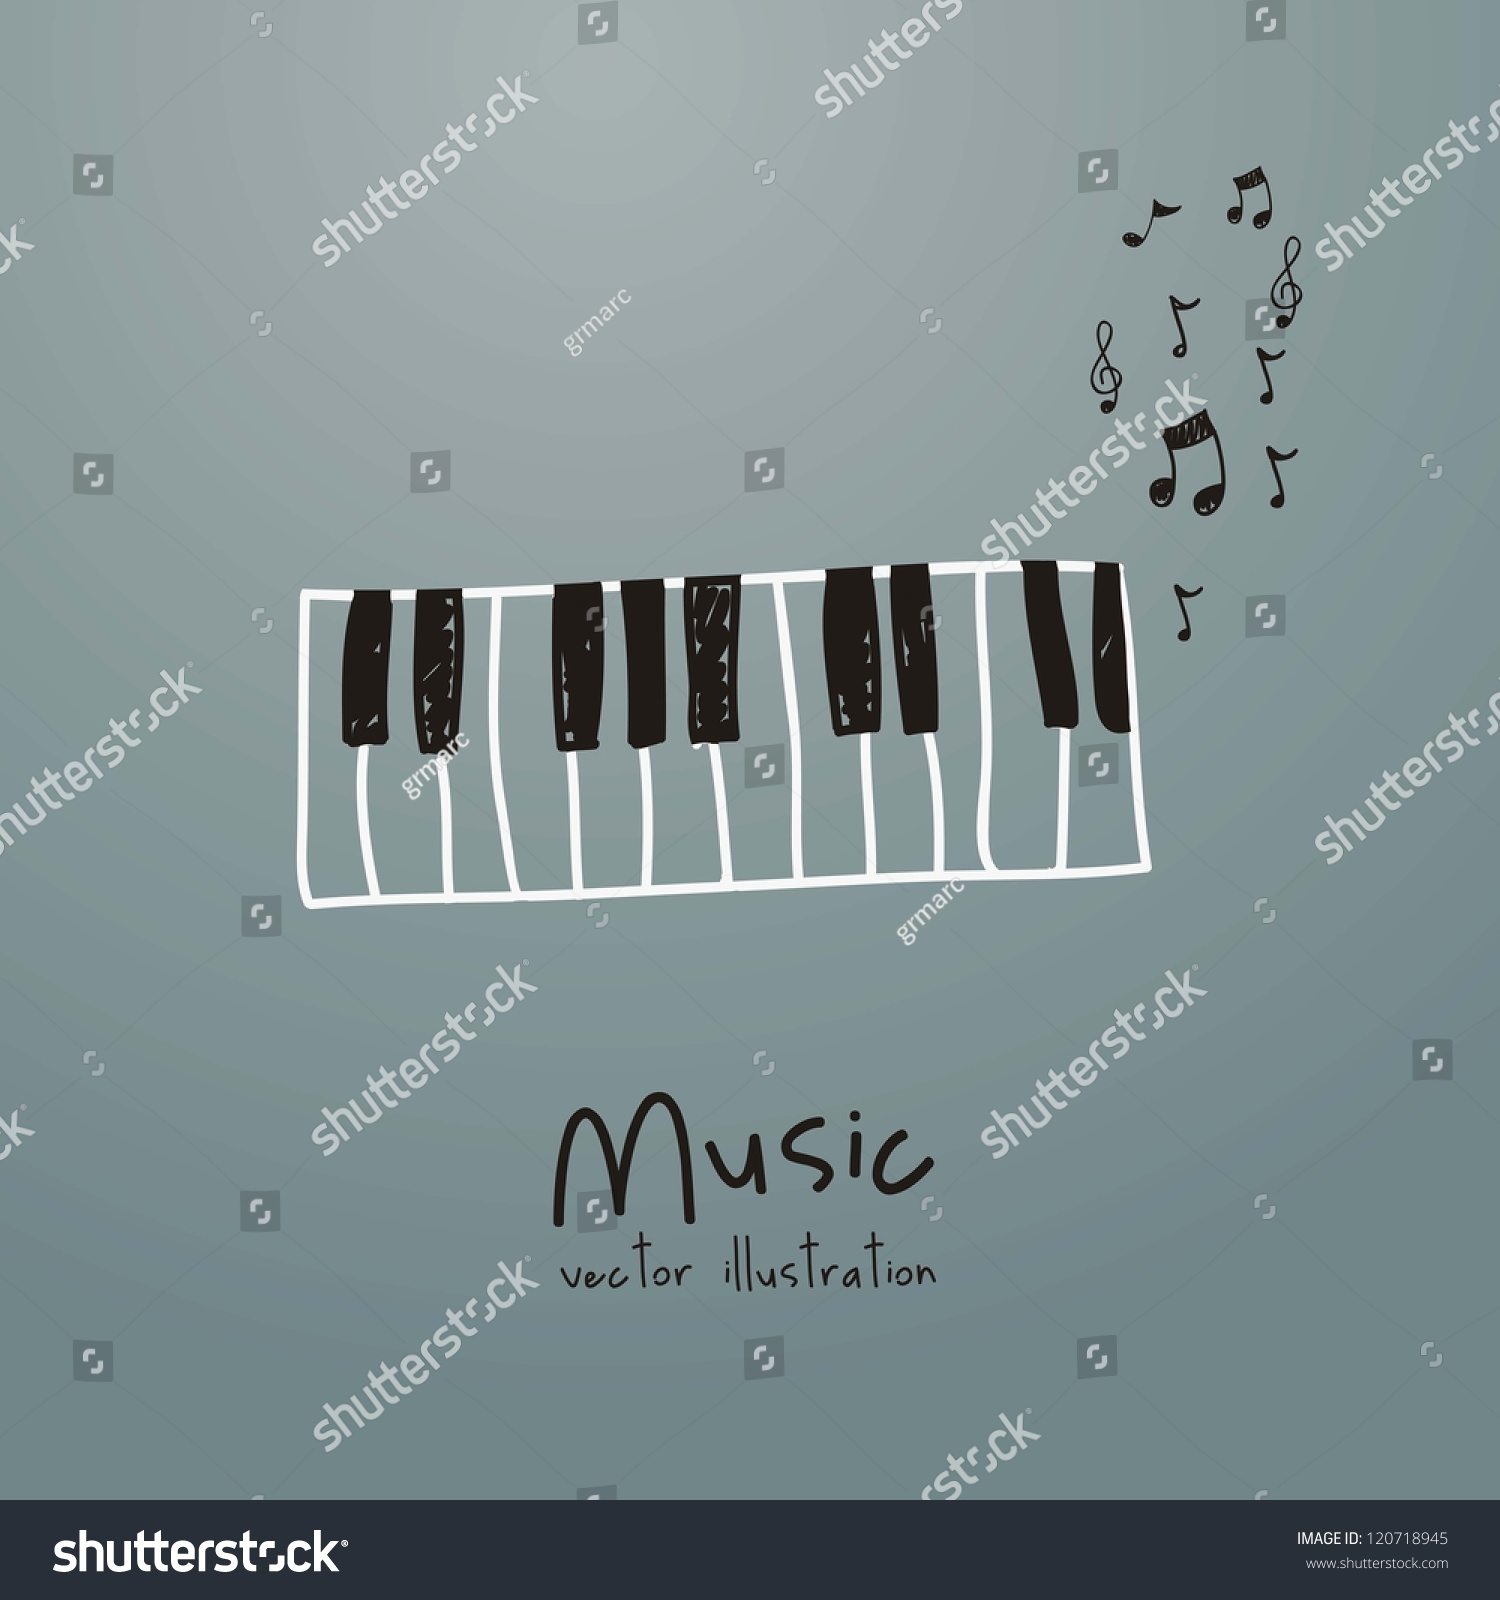 Music: Illustration Music Icon Piano Musical Notes Stock Vector